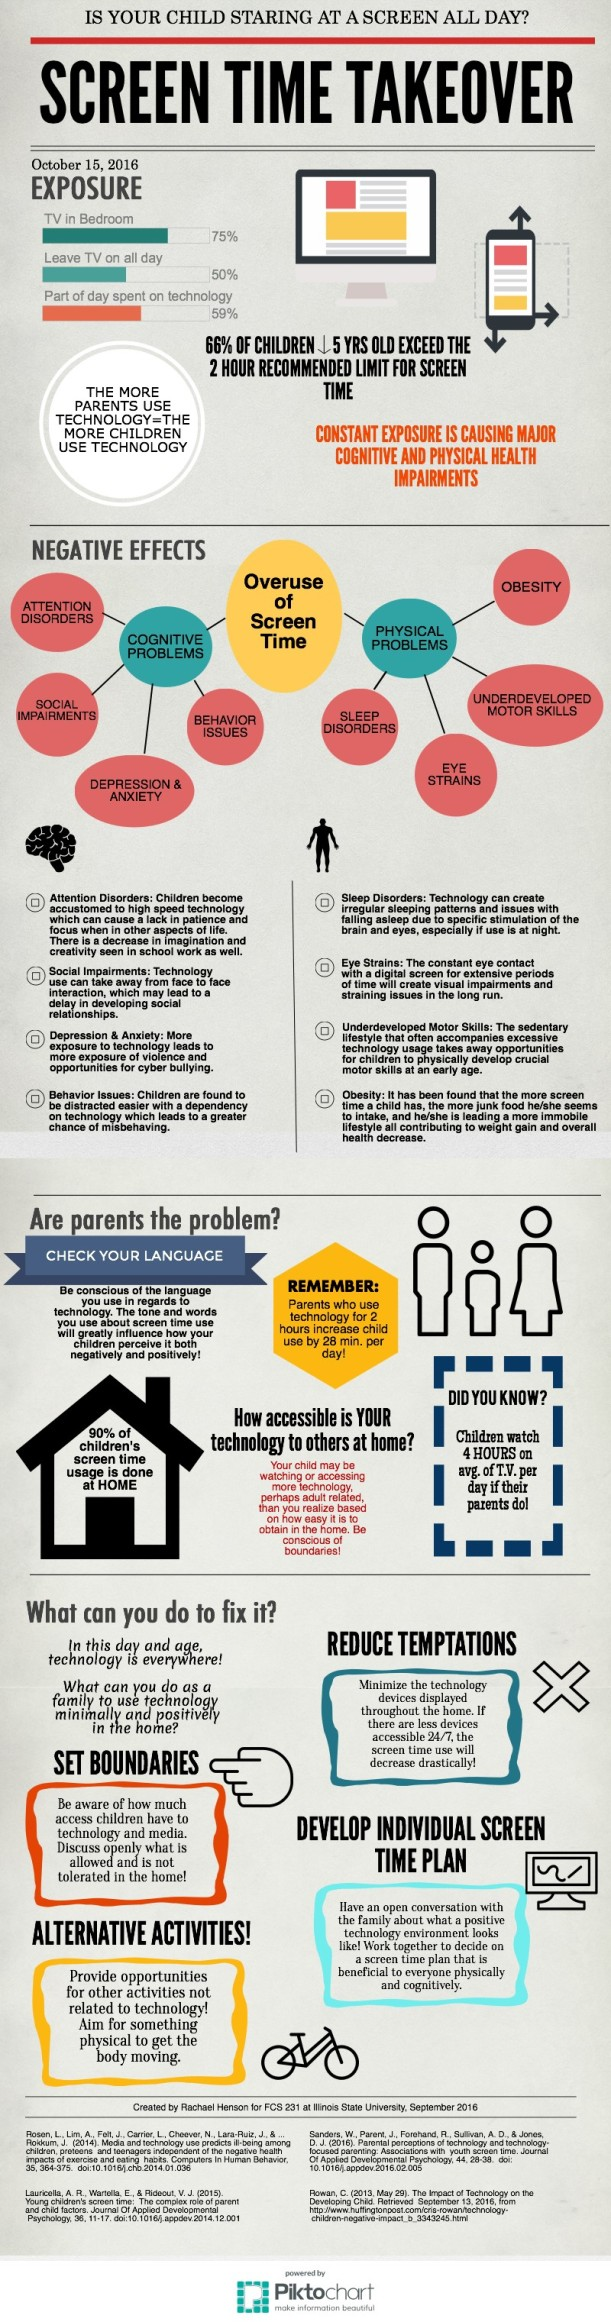 Screen Time Takeover Infographic by Rachael Henson